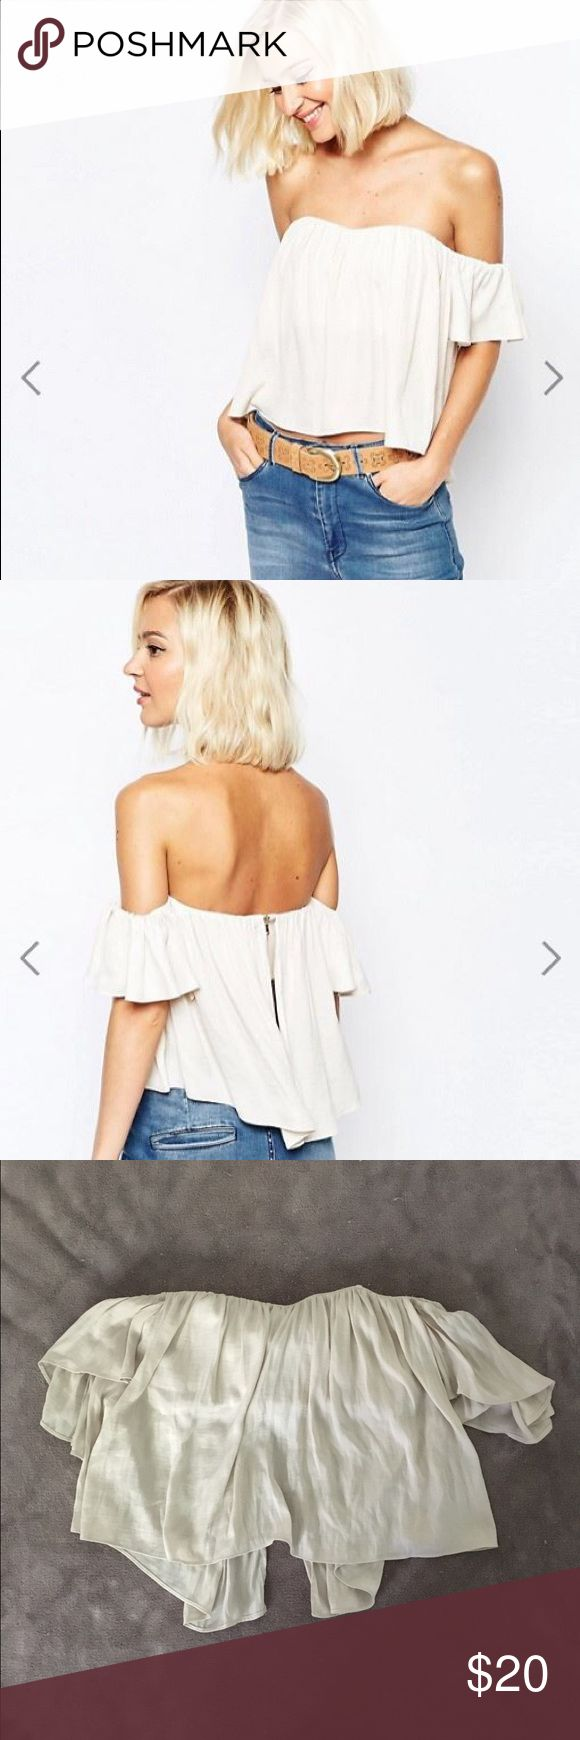 River Island Lace Bardot Top Cream US 4 bought it new worn once River Island Tops Crop Tops